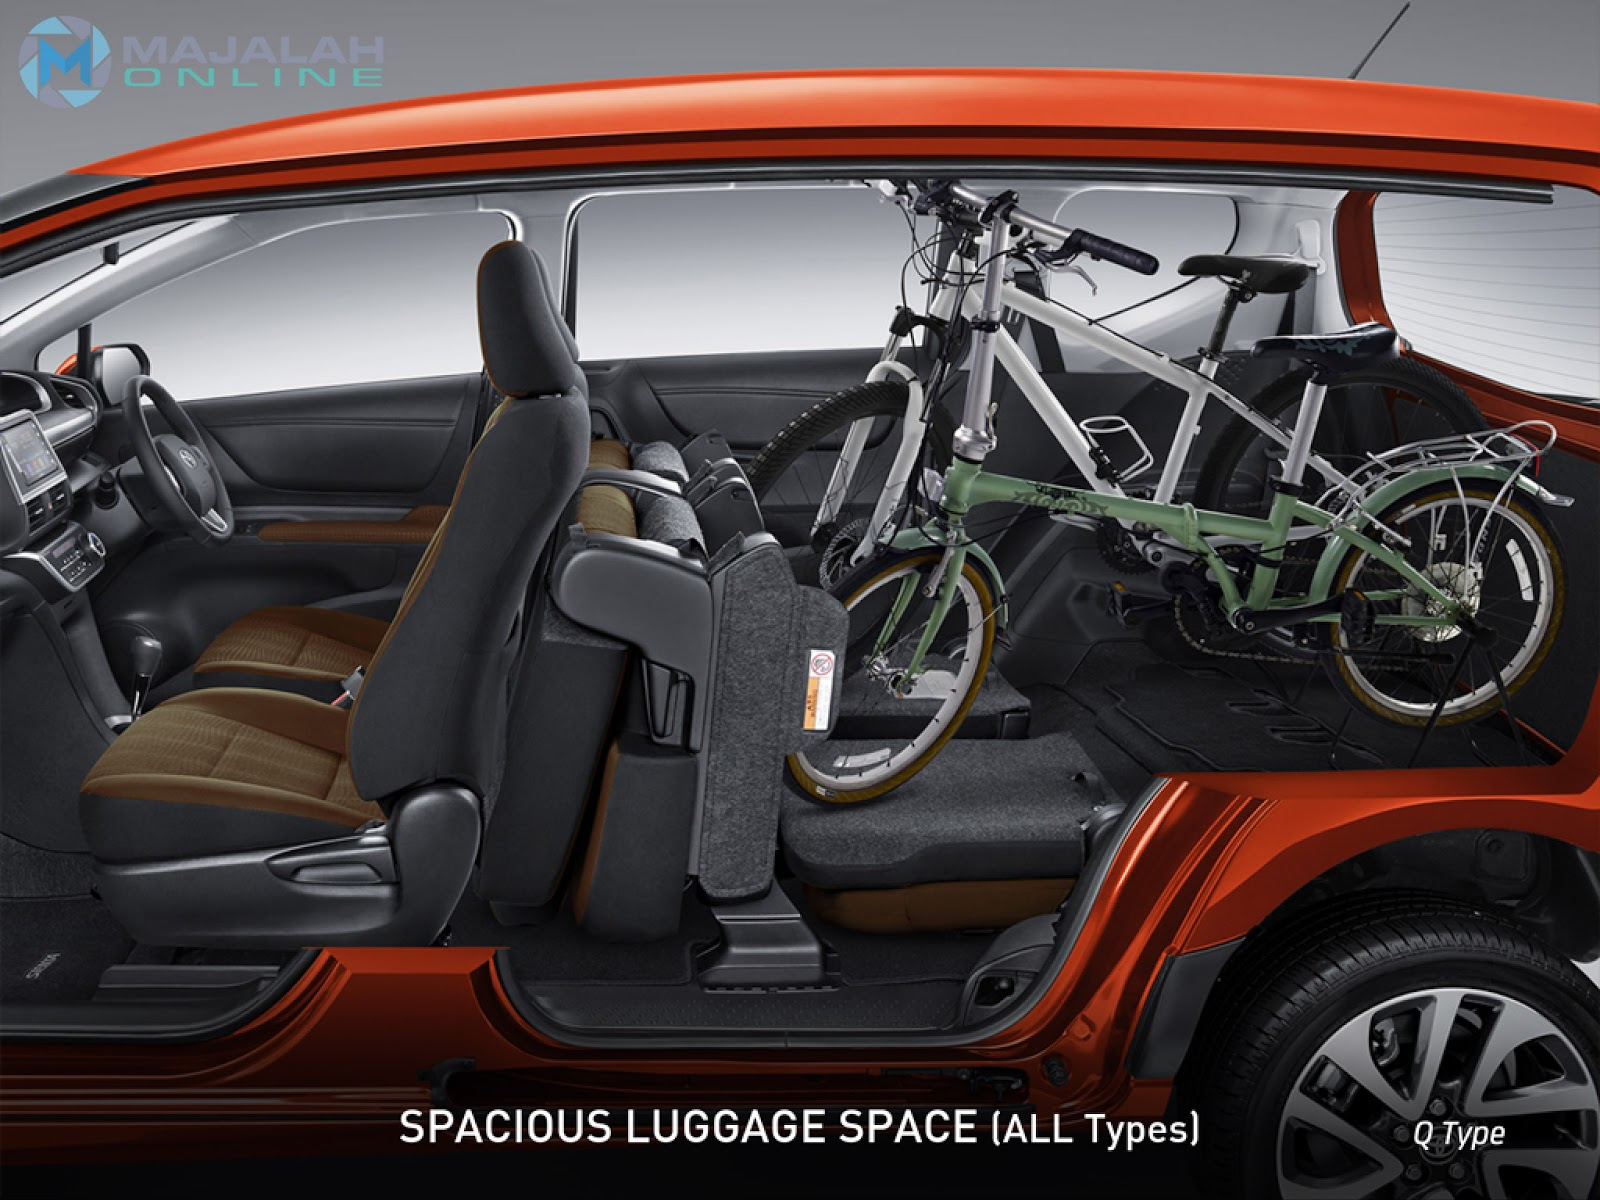 Toyota Sienta Luggage Space Pictures To Pin On Pinterest